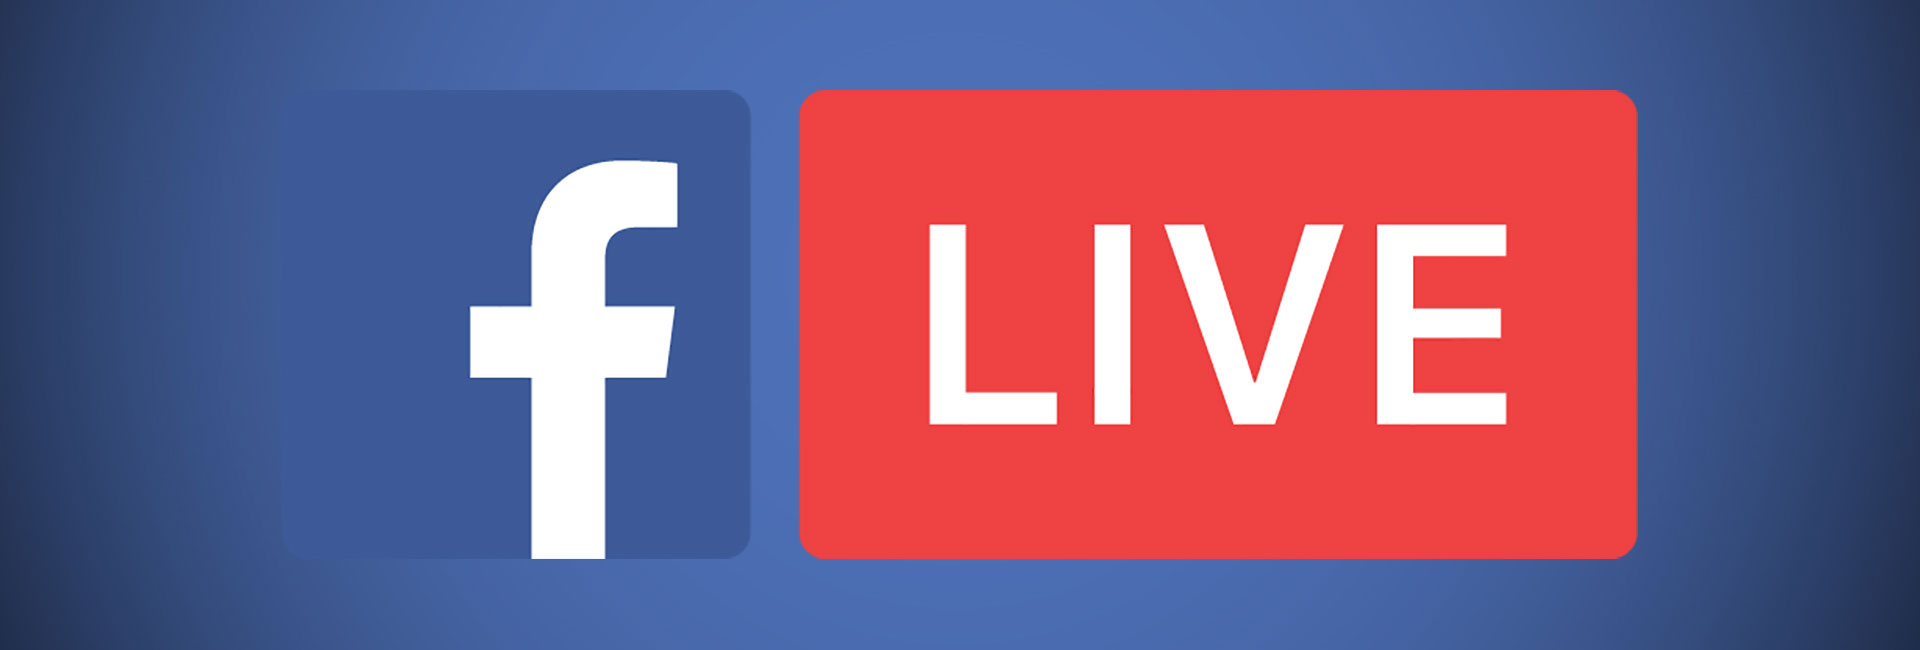 UK live event webcast company to stream to facebook live 360 video streaming company in UK filming and webcasting to facebook streaming company england